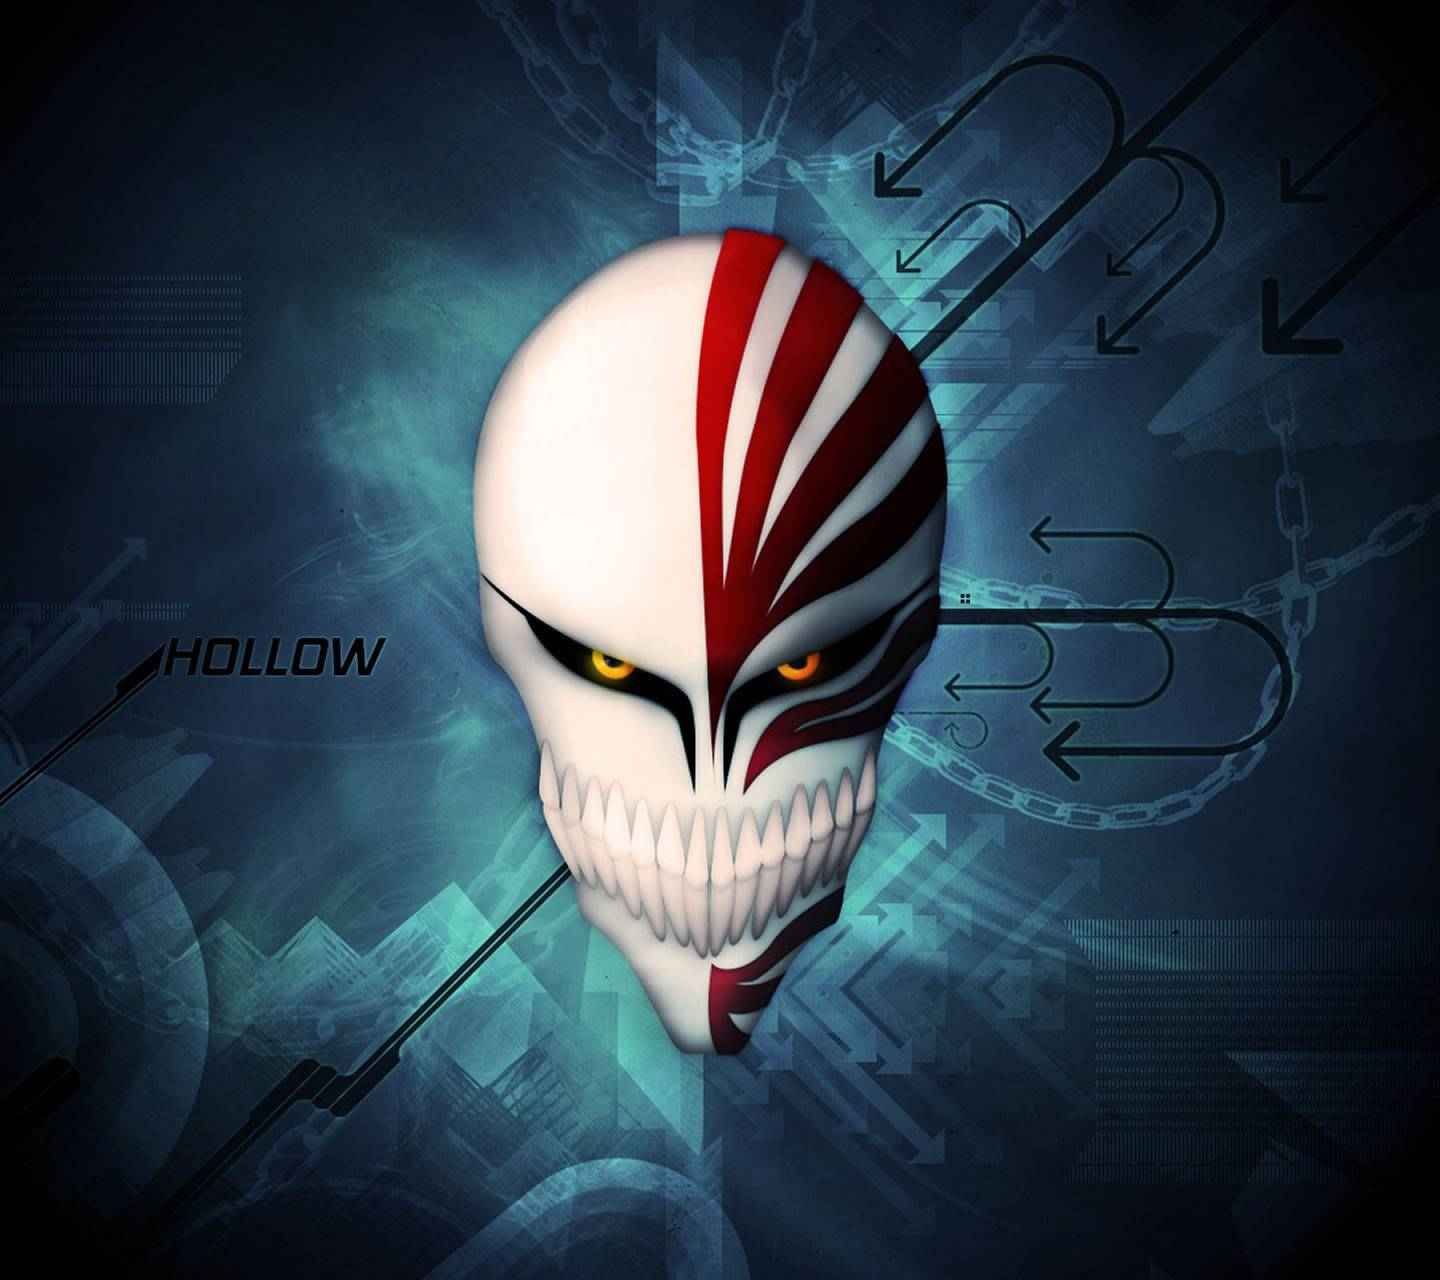 Zedge Wallpapers Ichigo: Hollow Mask Wallpaper By Freakjul